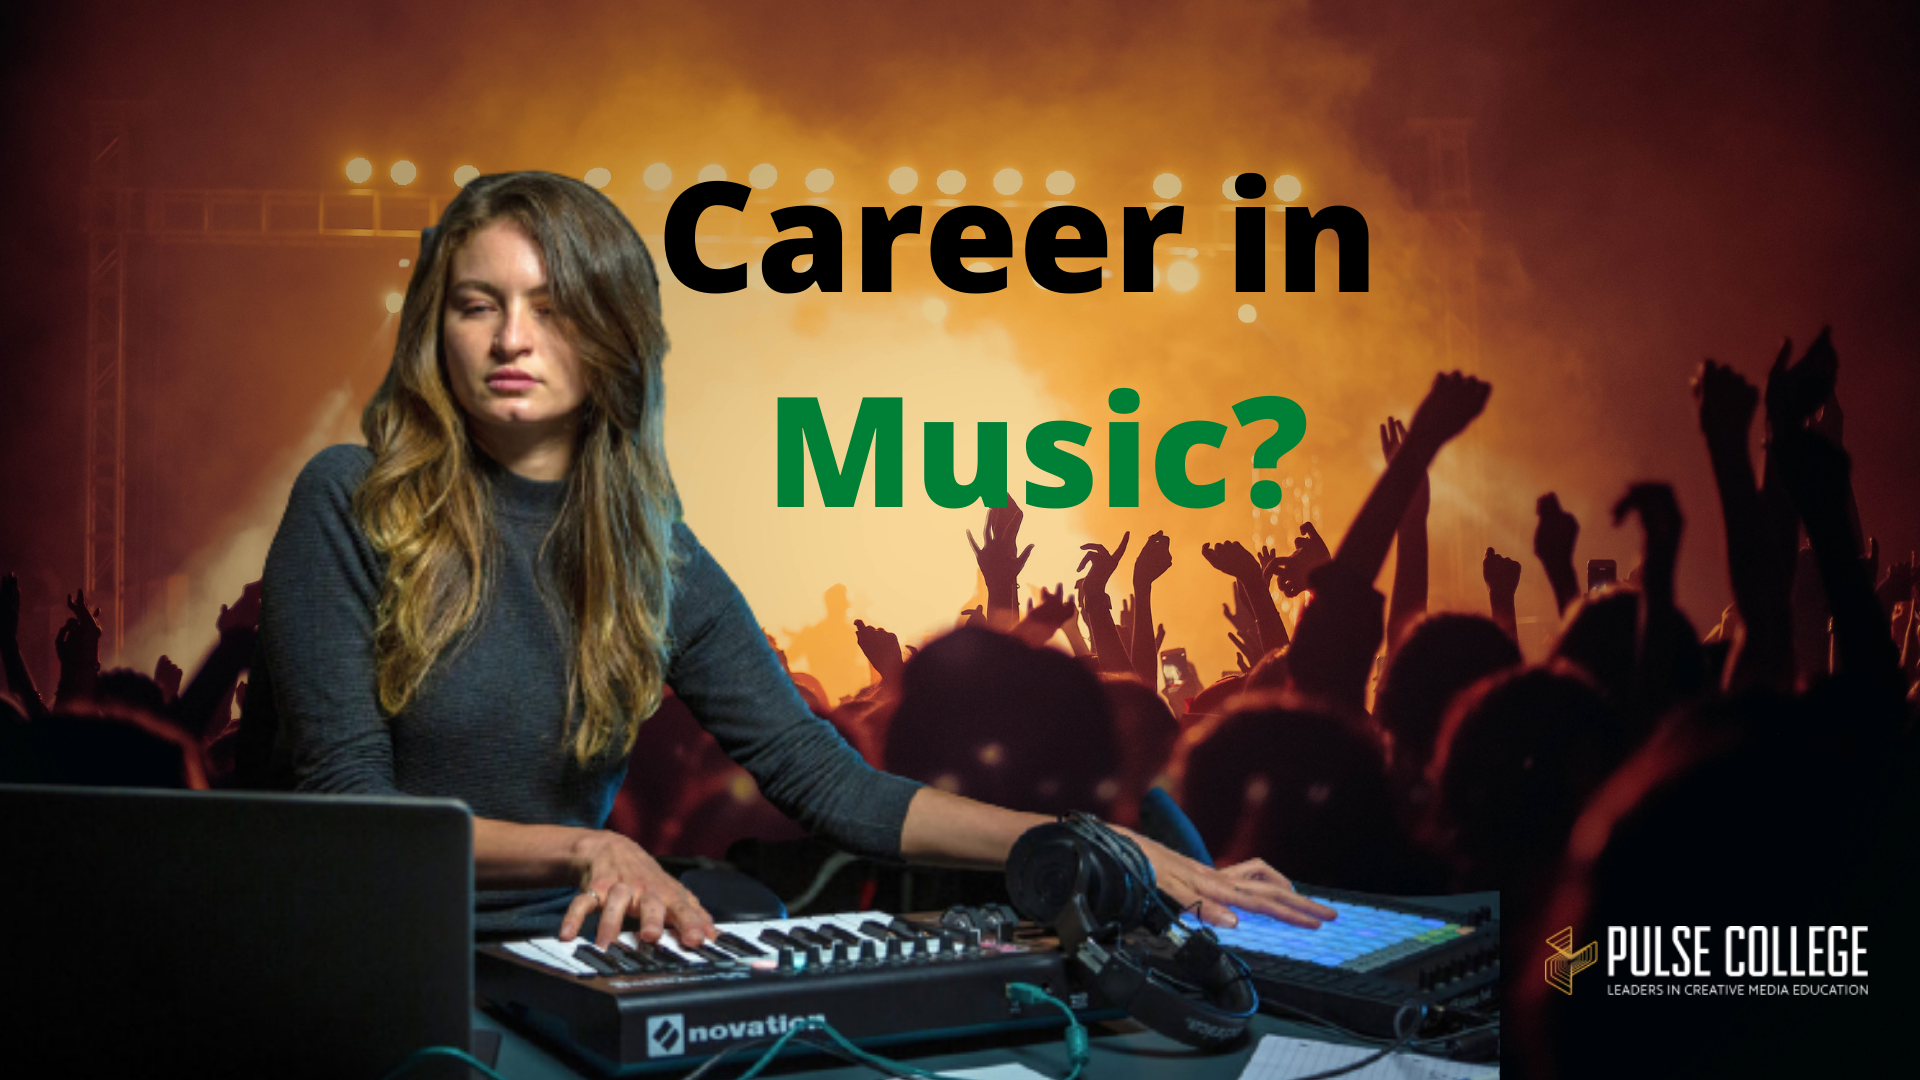 Career in Music